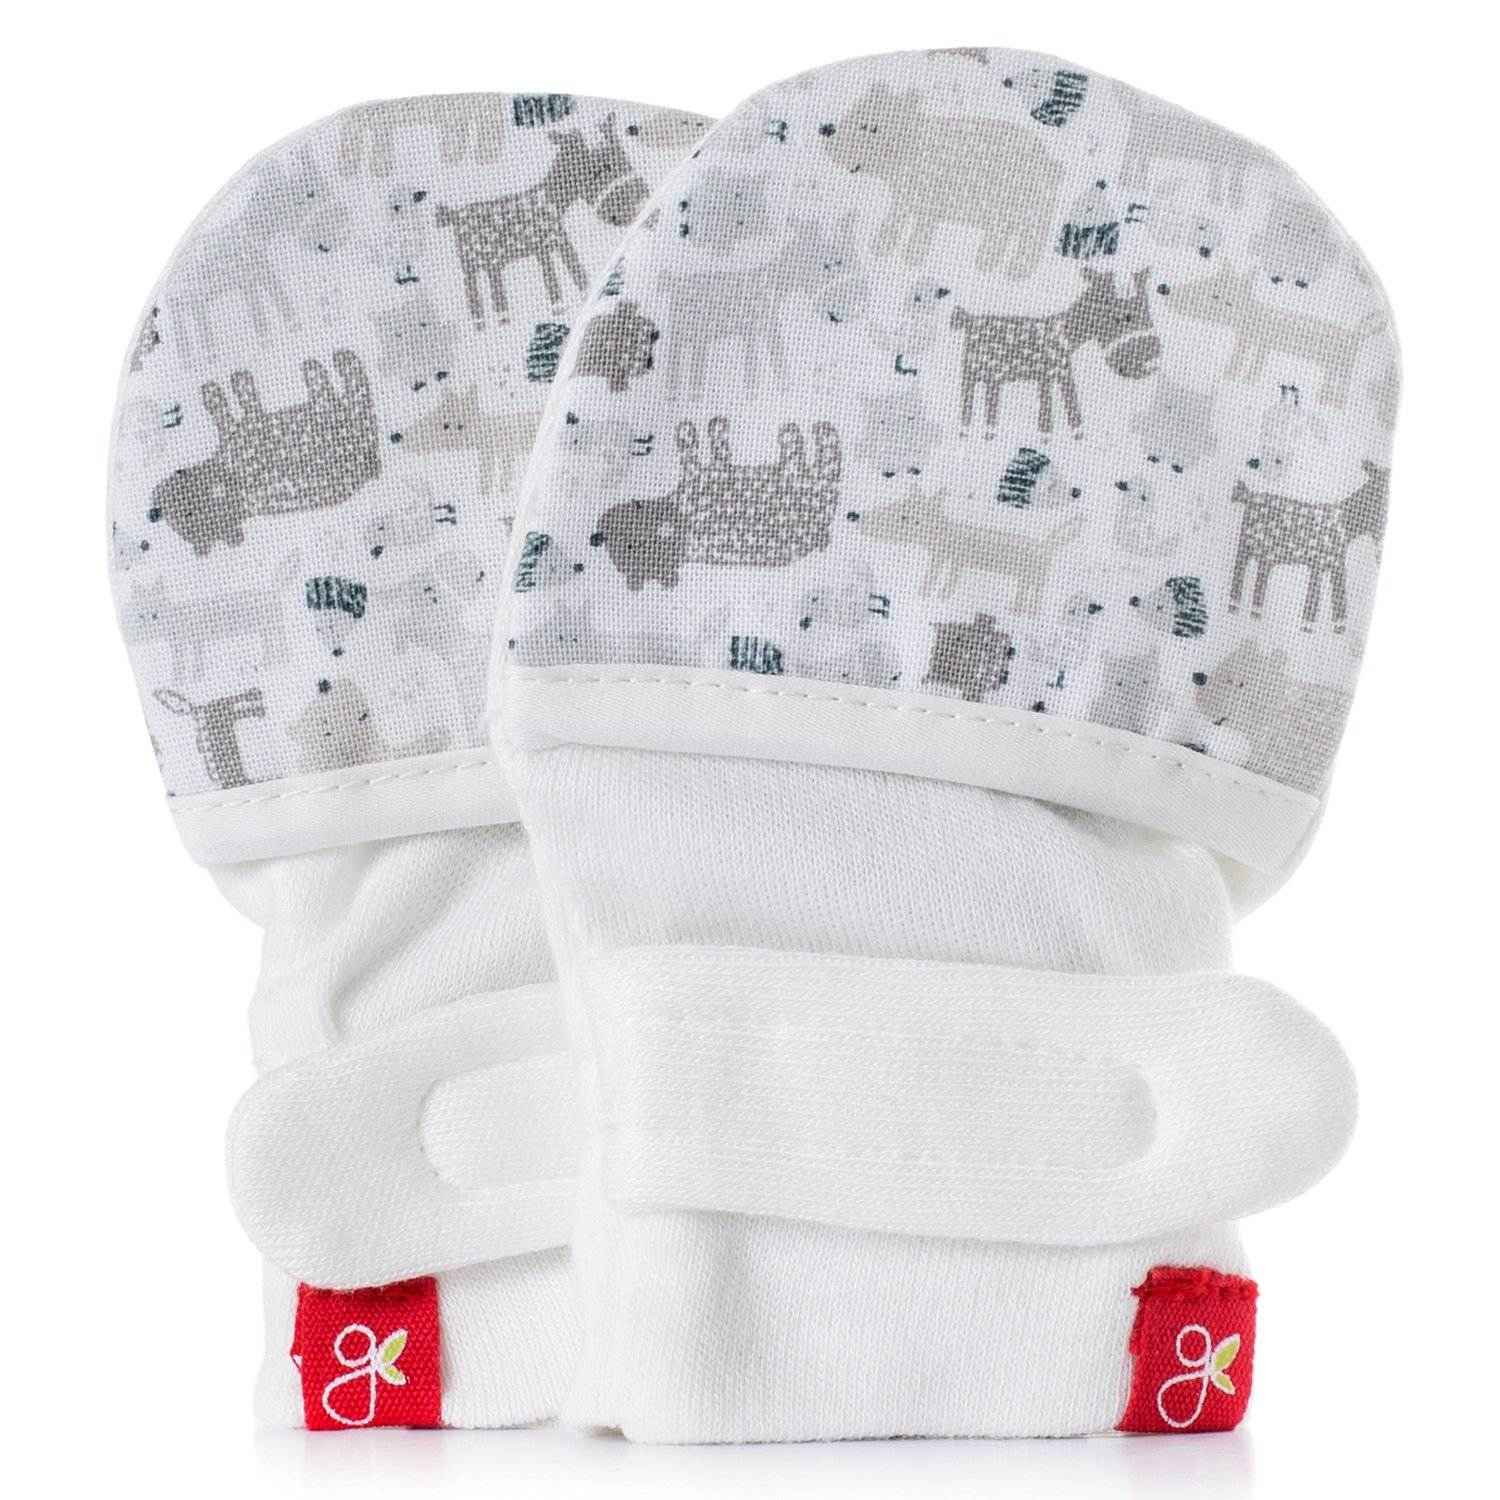 goumikids - goumimitts, Scratch Free Baby Mittens, Organic Soft Stay On Unisex Mittens, Stops Scratches and Prevents Germs